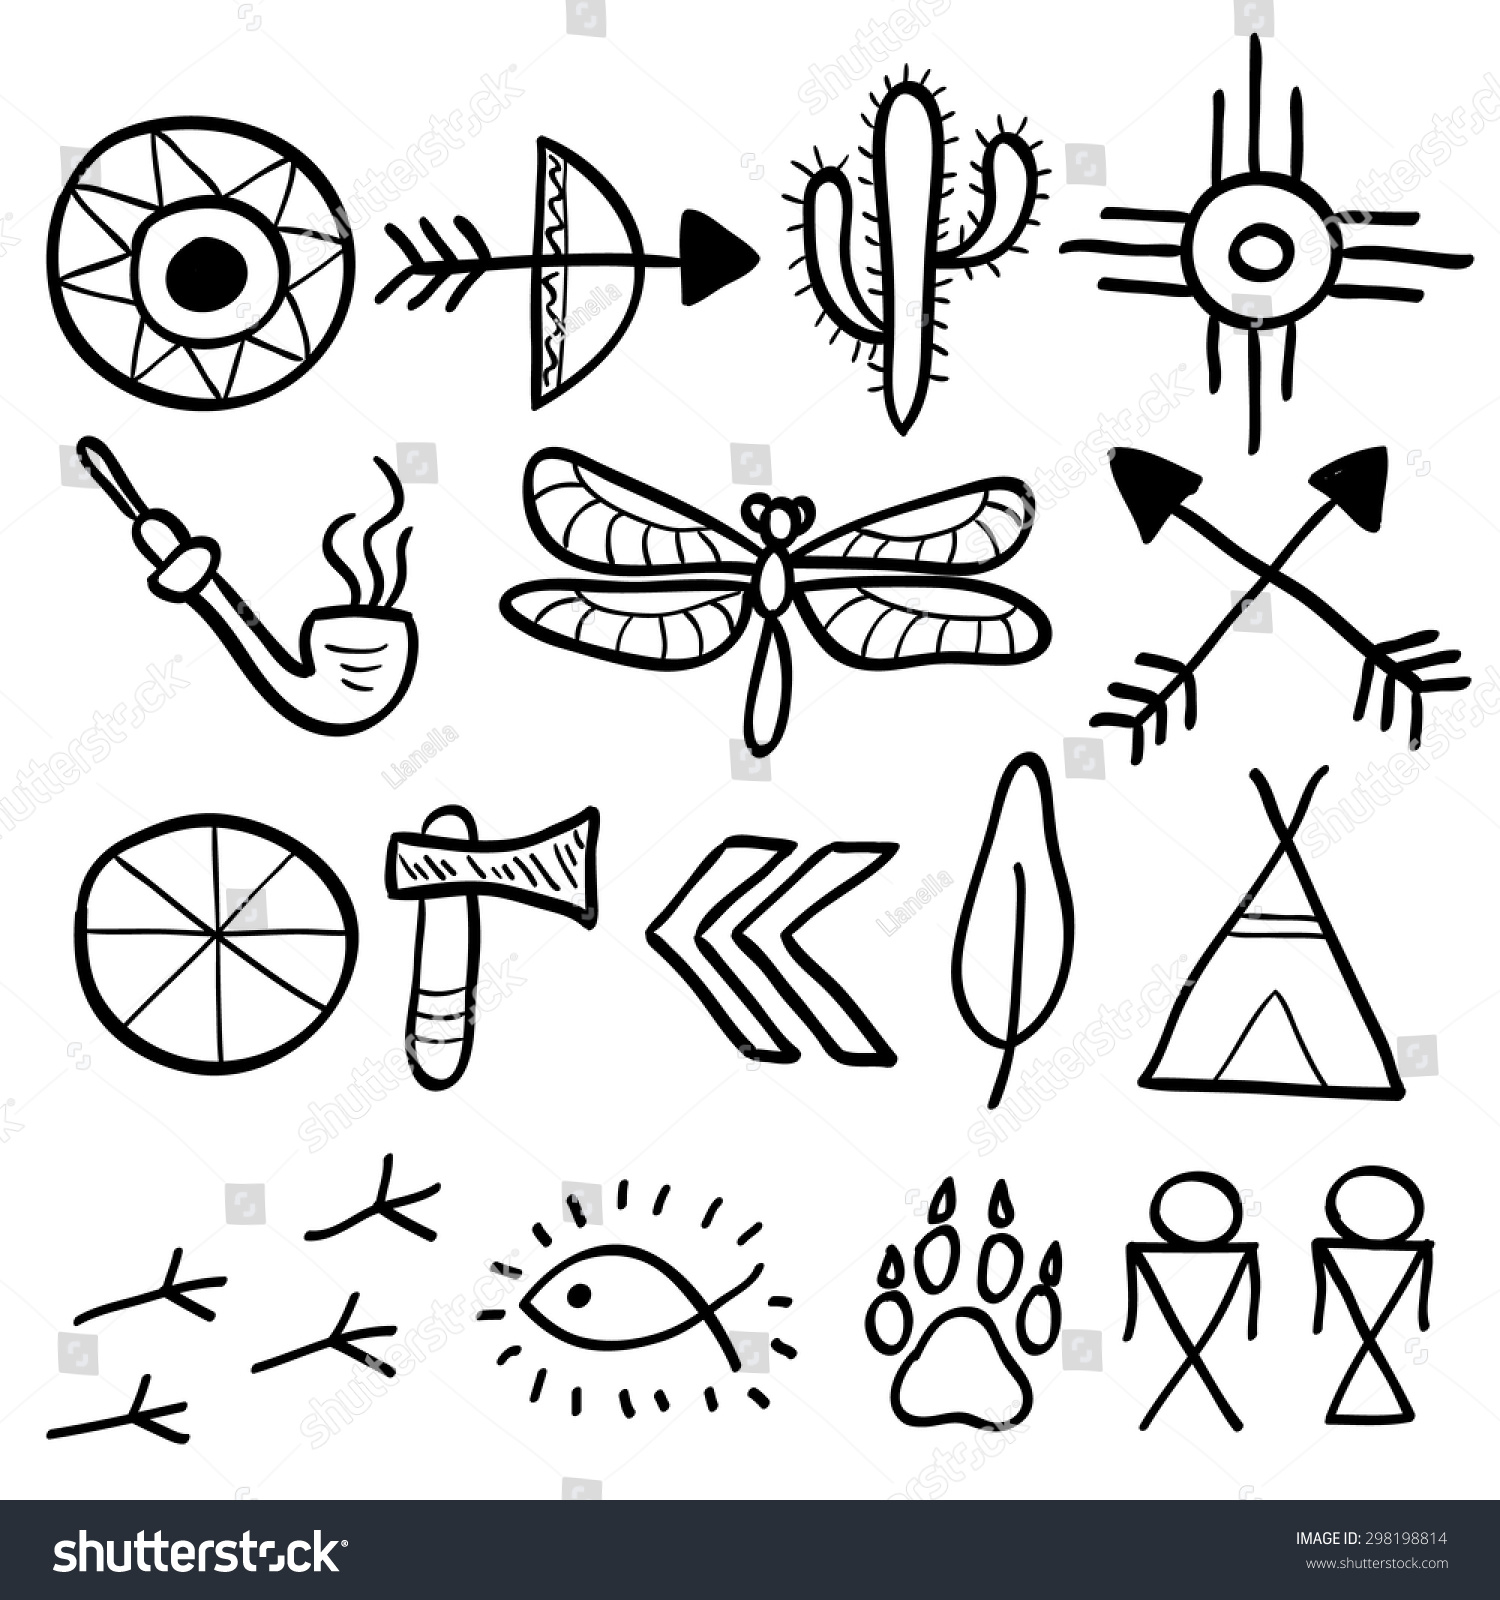 Hand Drawn Doodle Vector Elements Set Stock Vector Royalty Free